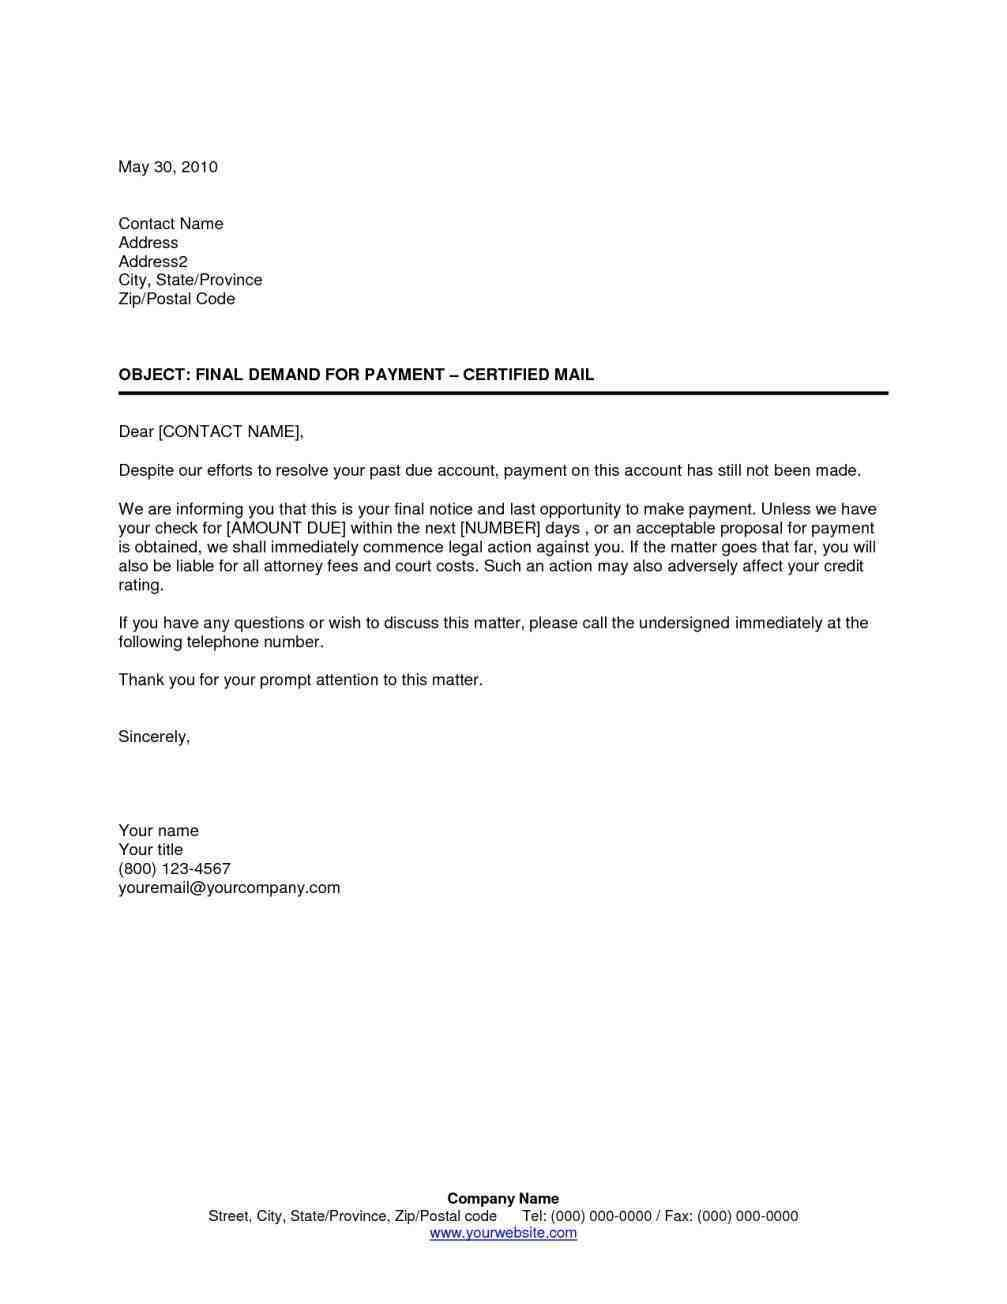 Final Notice before Legal Action Letter Template Uk - Collection Collections Notice Template Notice Template Regarding